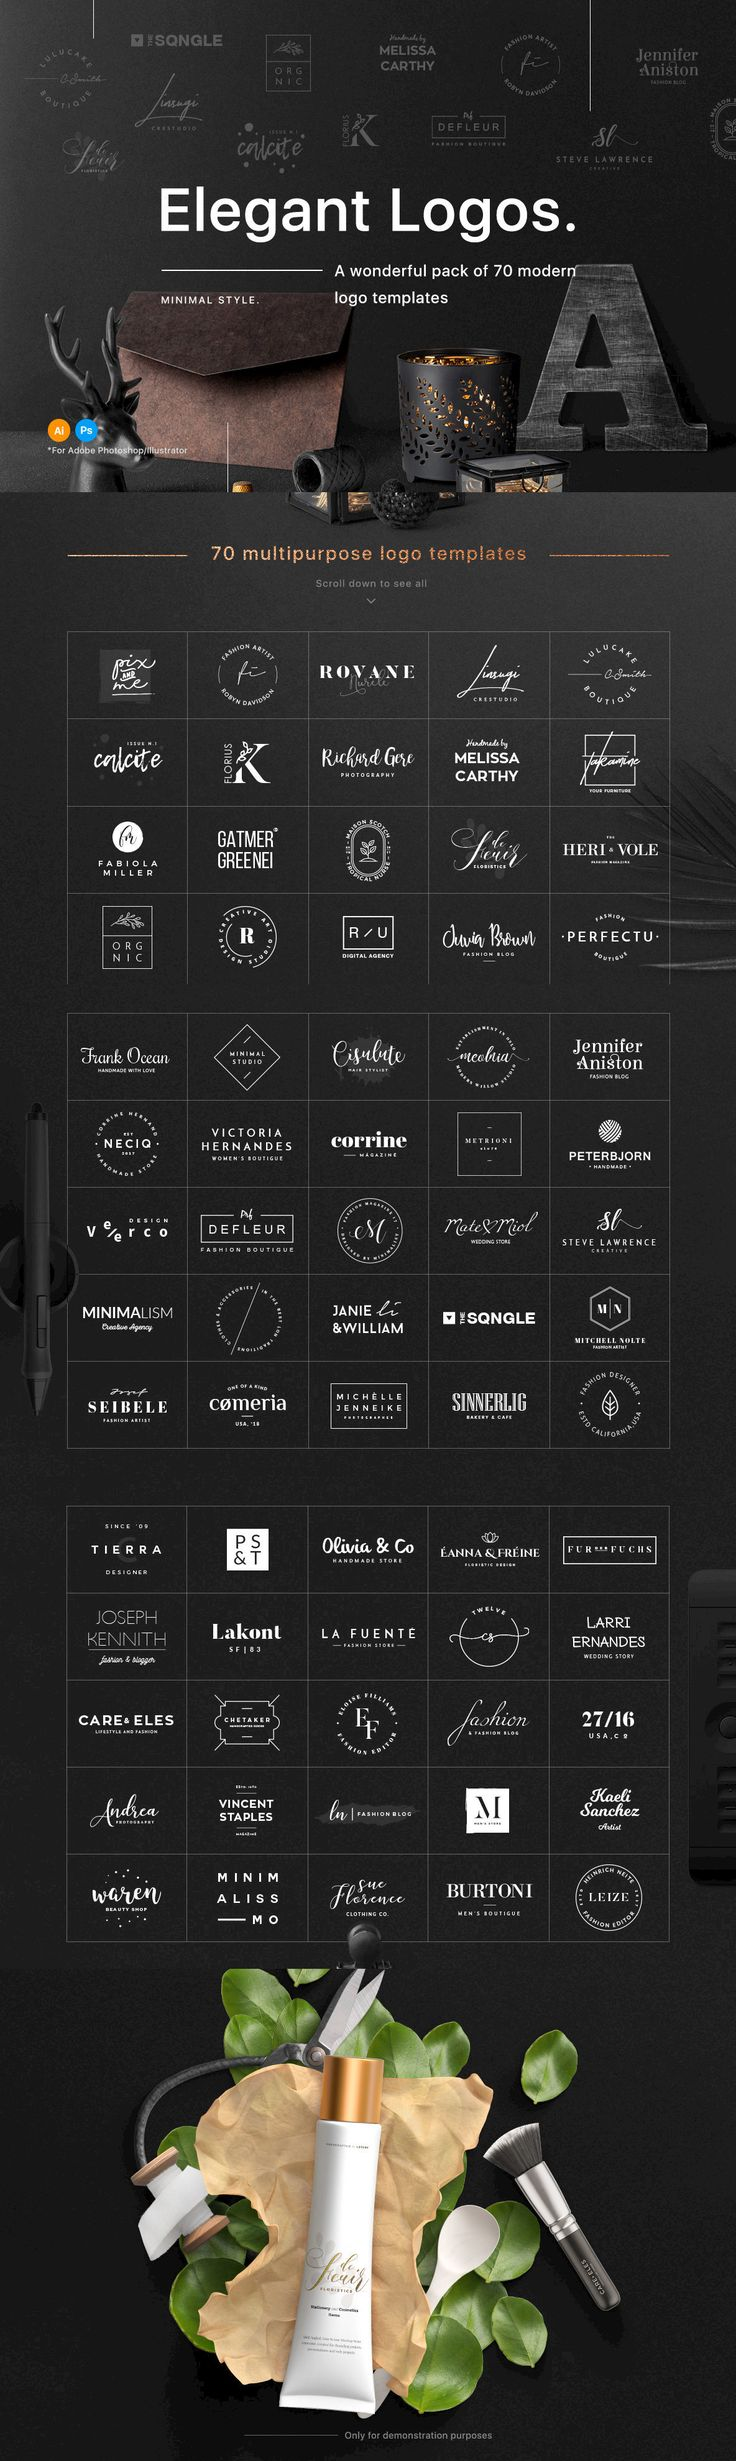 70 Elegant Logo Templates - A wonderful pack of 70 modern and clean logos that can help you to create perfe... http://jrstudioweb.com/diseno-grafico/diseno-de-logotipos/